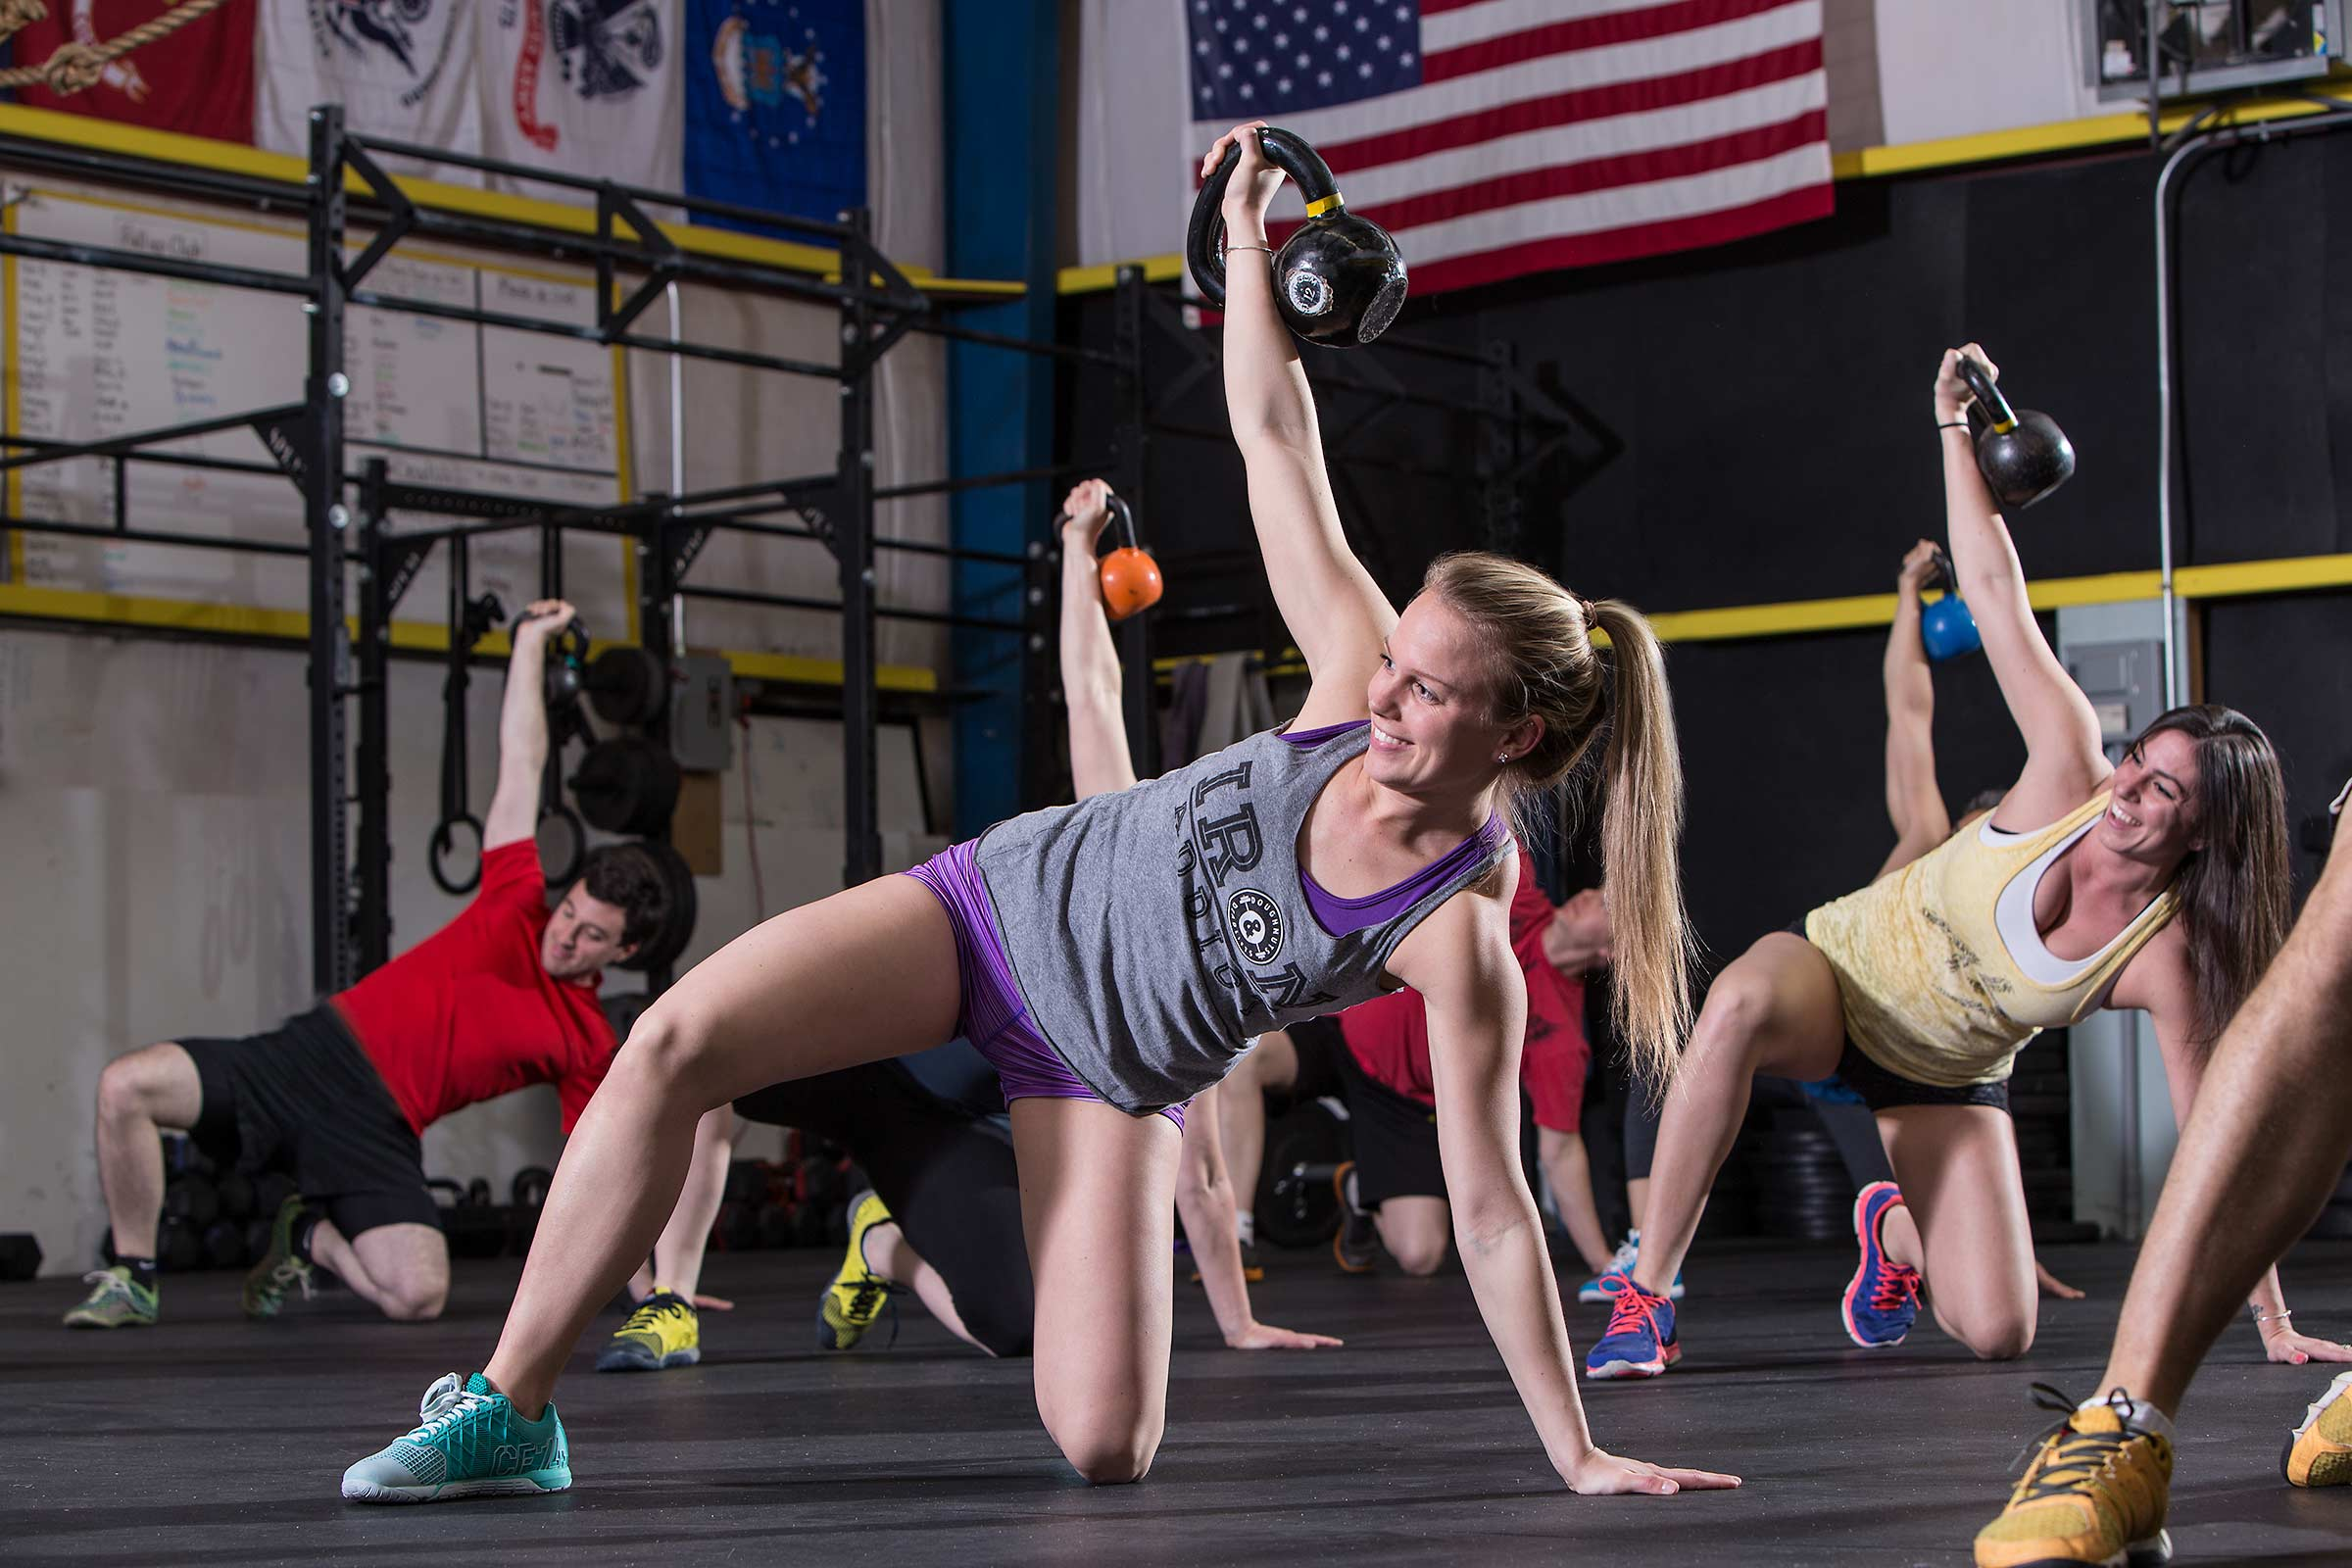 A young woman smiling while engaged in a group Crossfit Workout